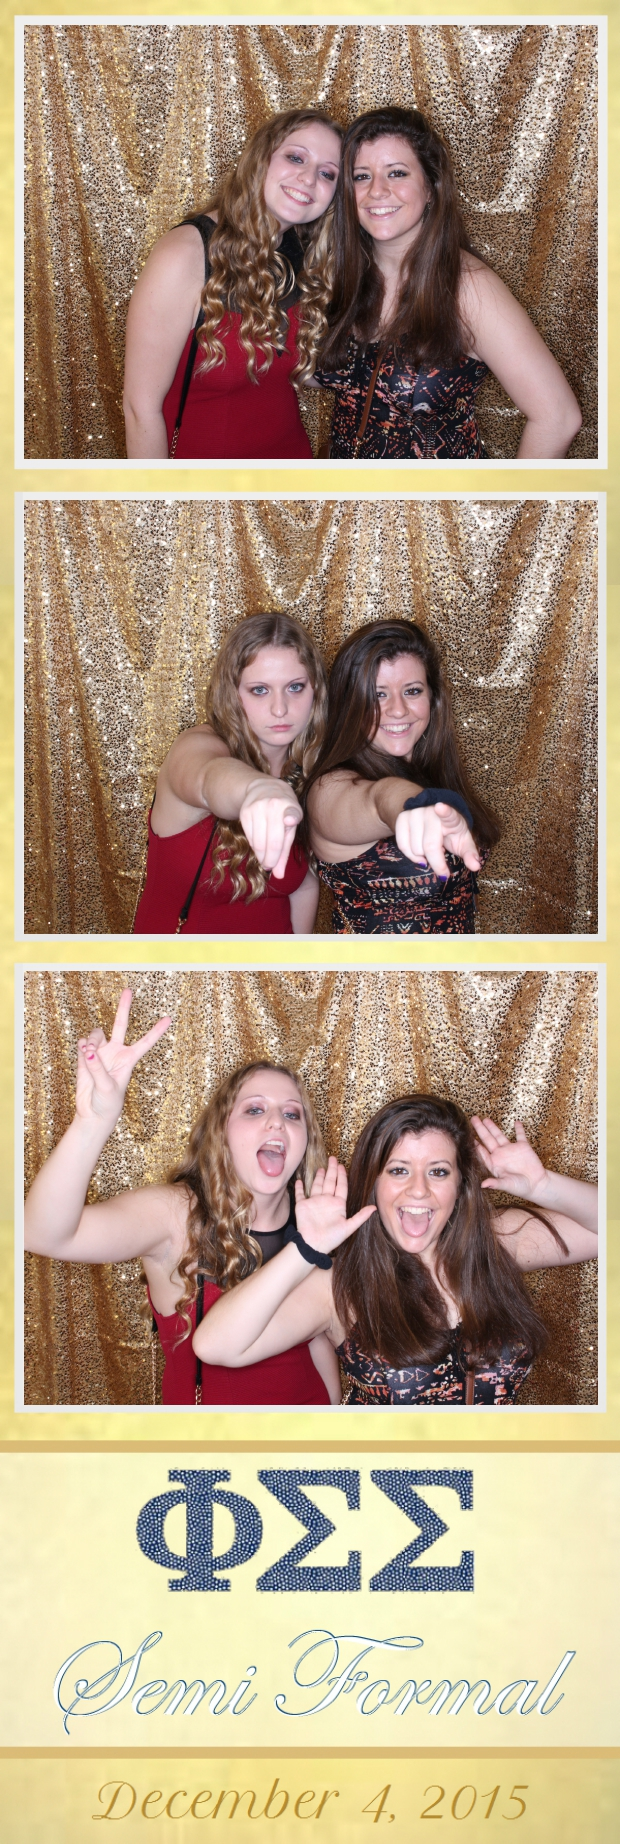 Guest House Events Photo Booth Phi Sigma Sigma Semi Formal (54).jpg